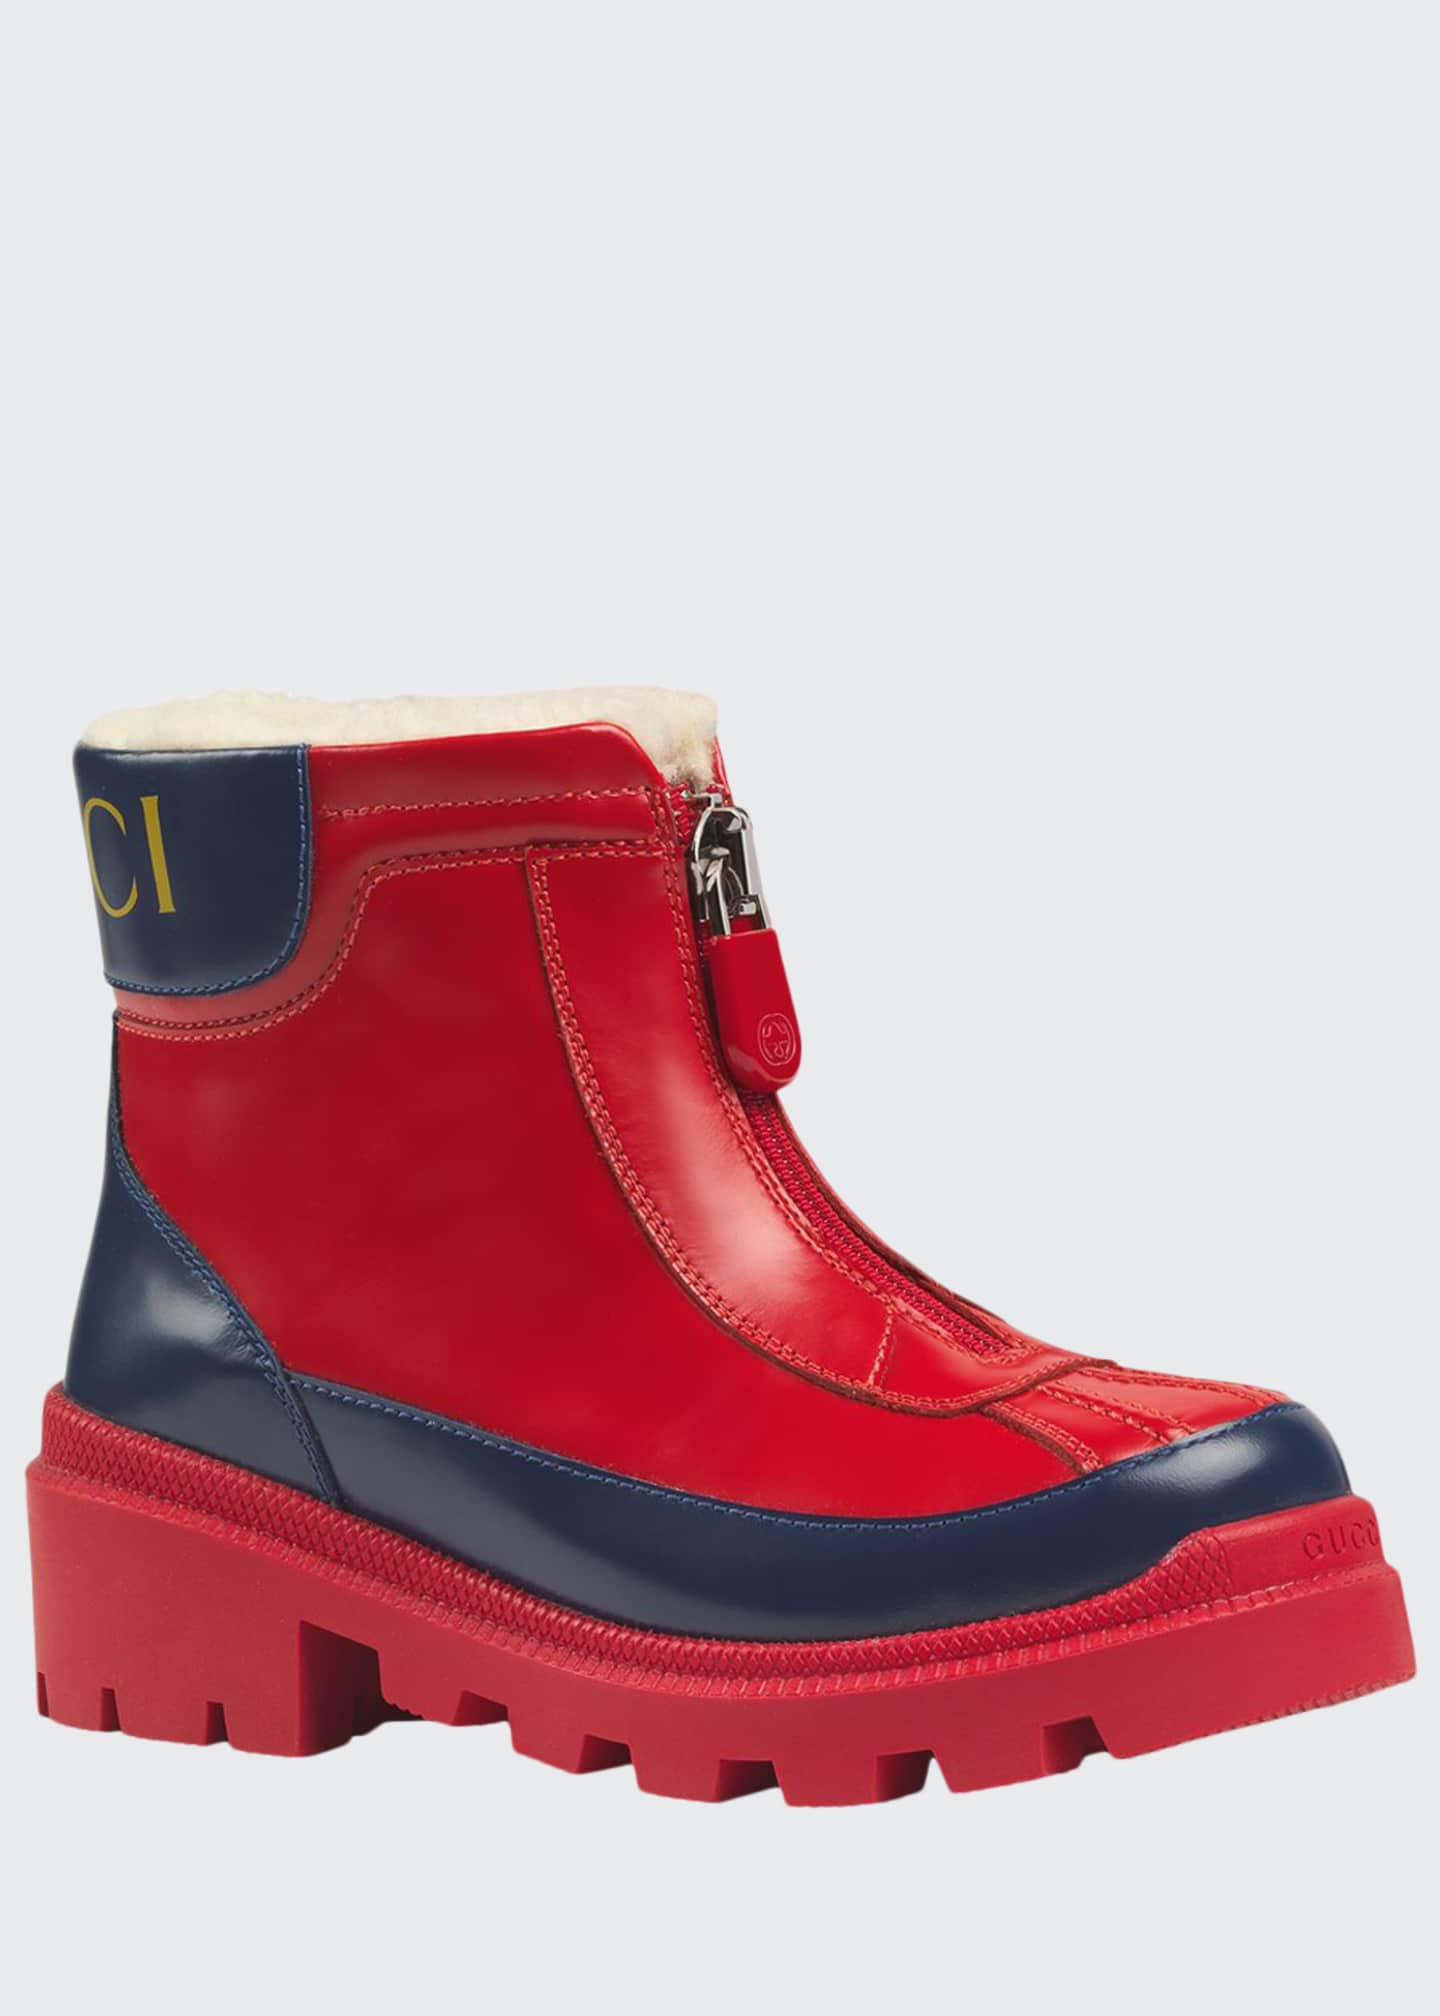 Gucci Leather Zip Front Boots, Toddler/Kids